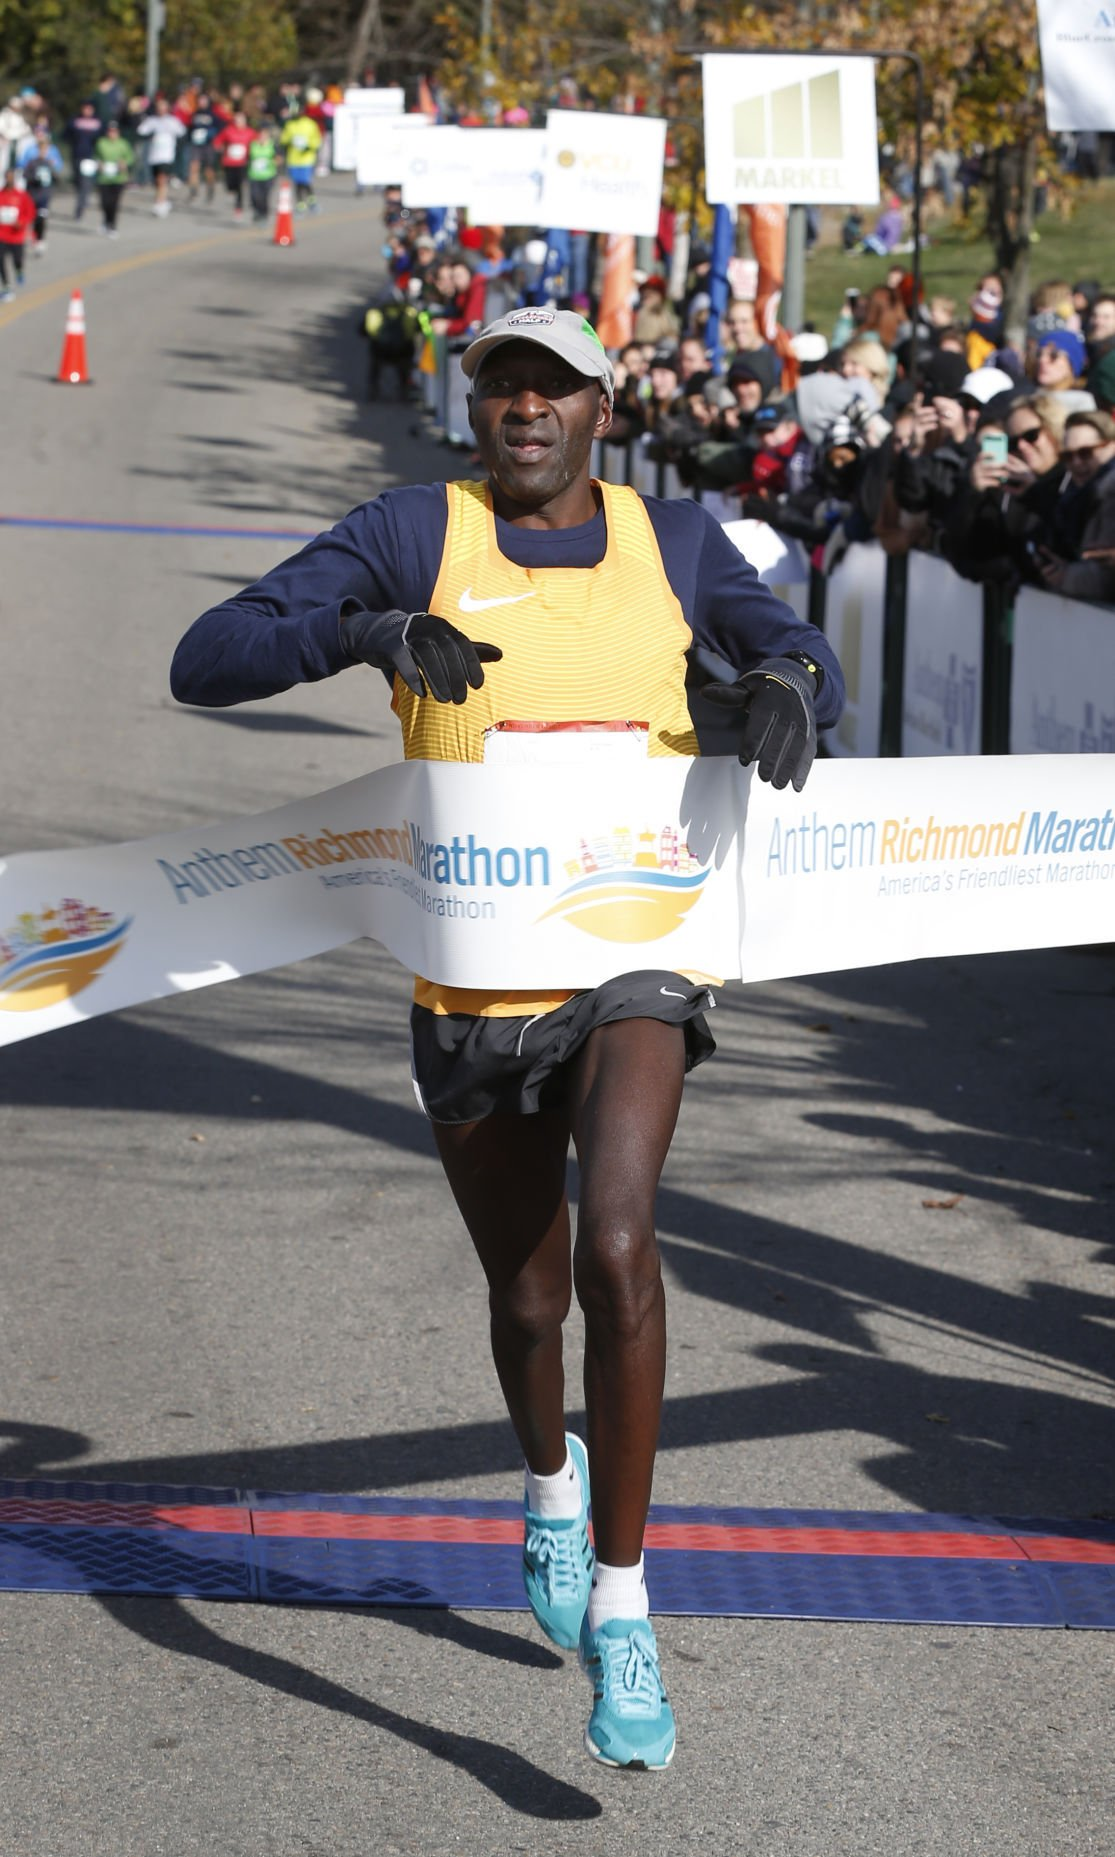 Richmond Marathon disqualifies three runners, including men's winner